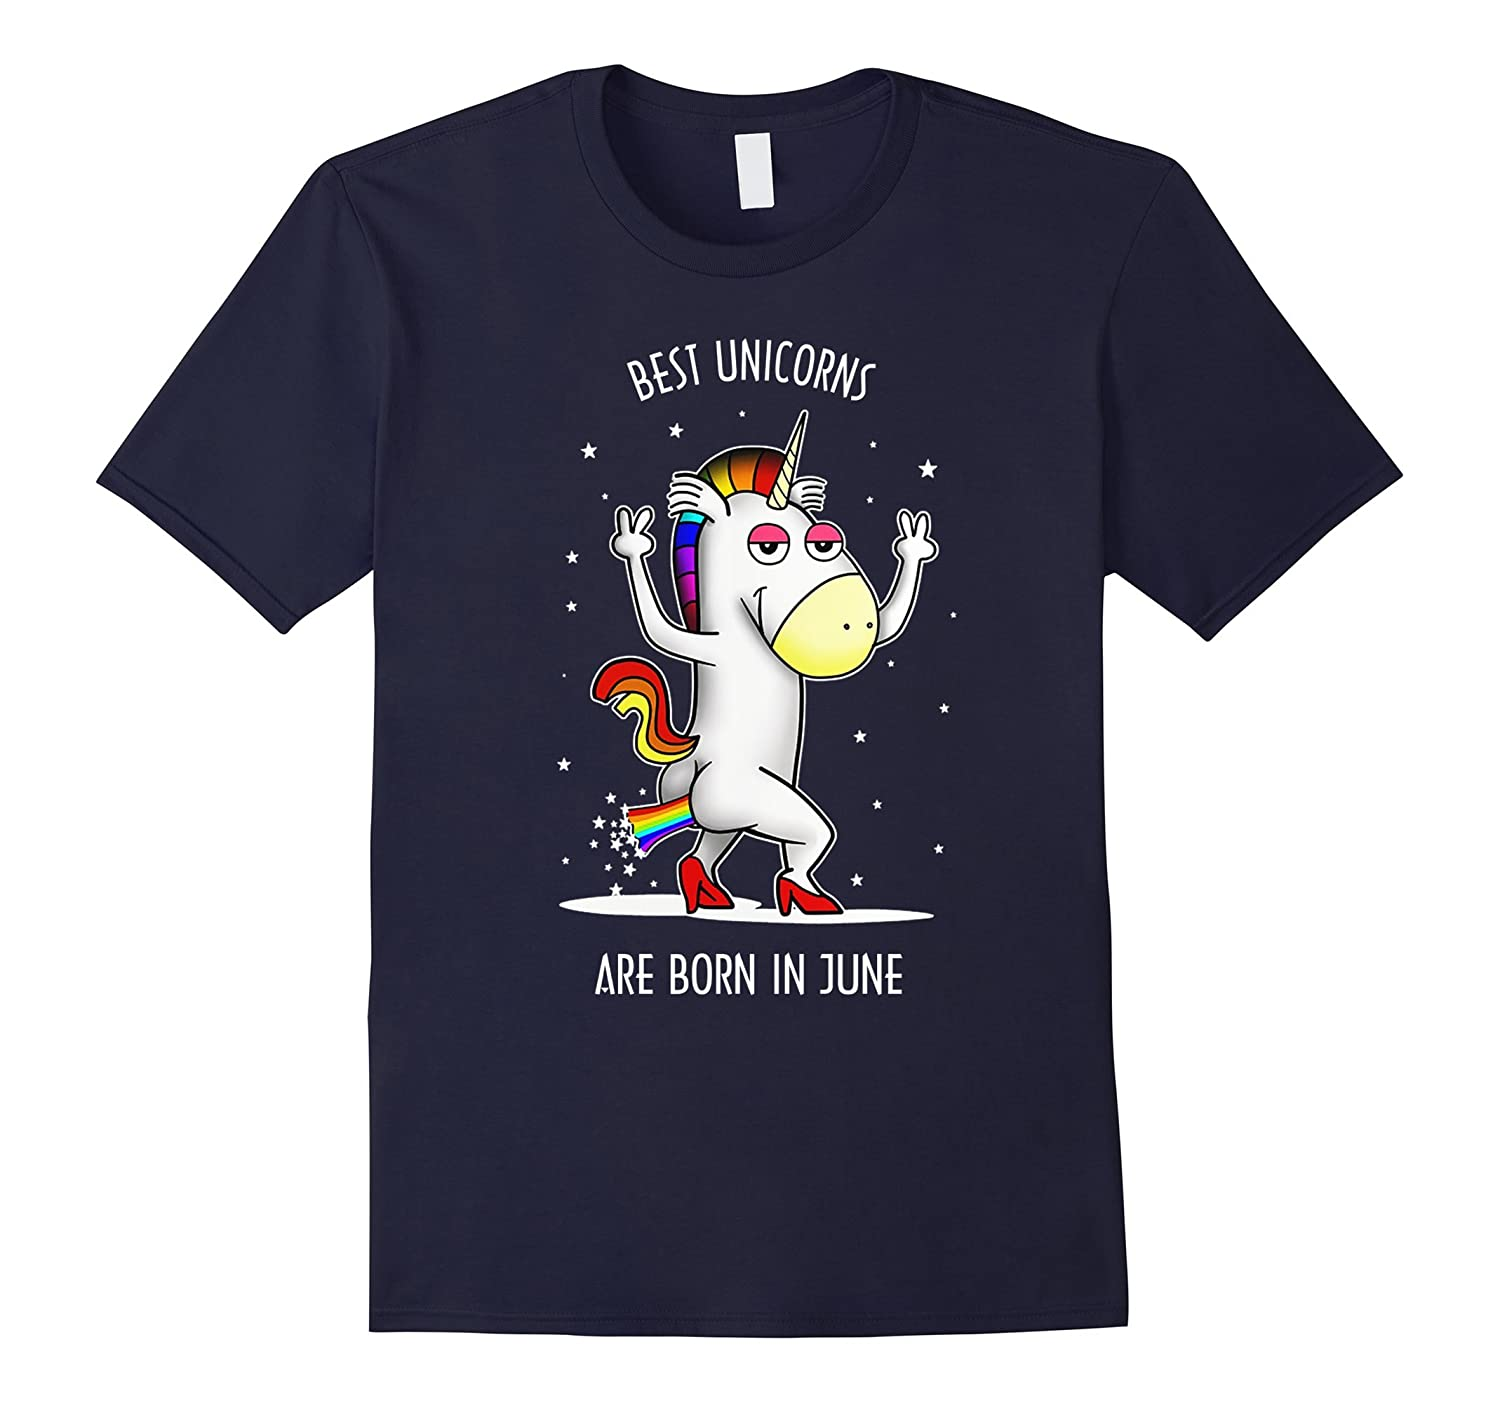 Best unicorns are born in June T-shirt-CD